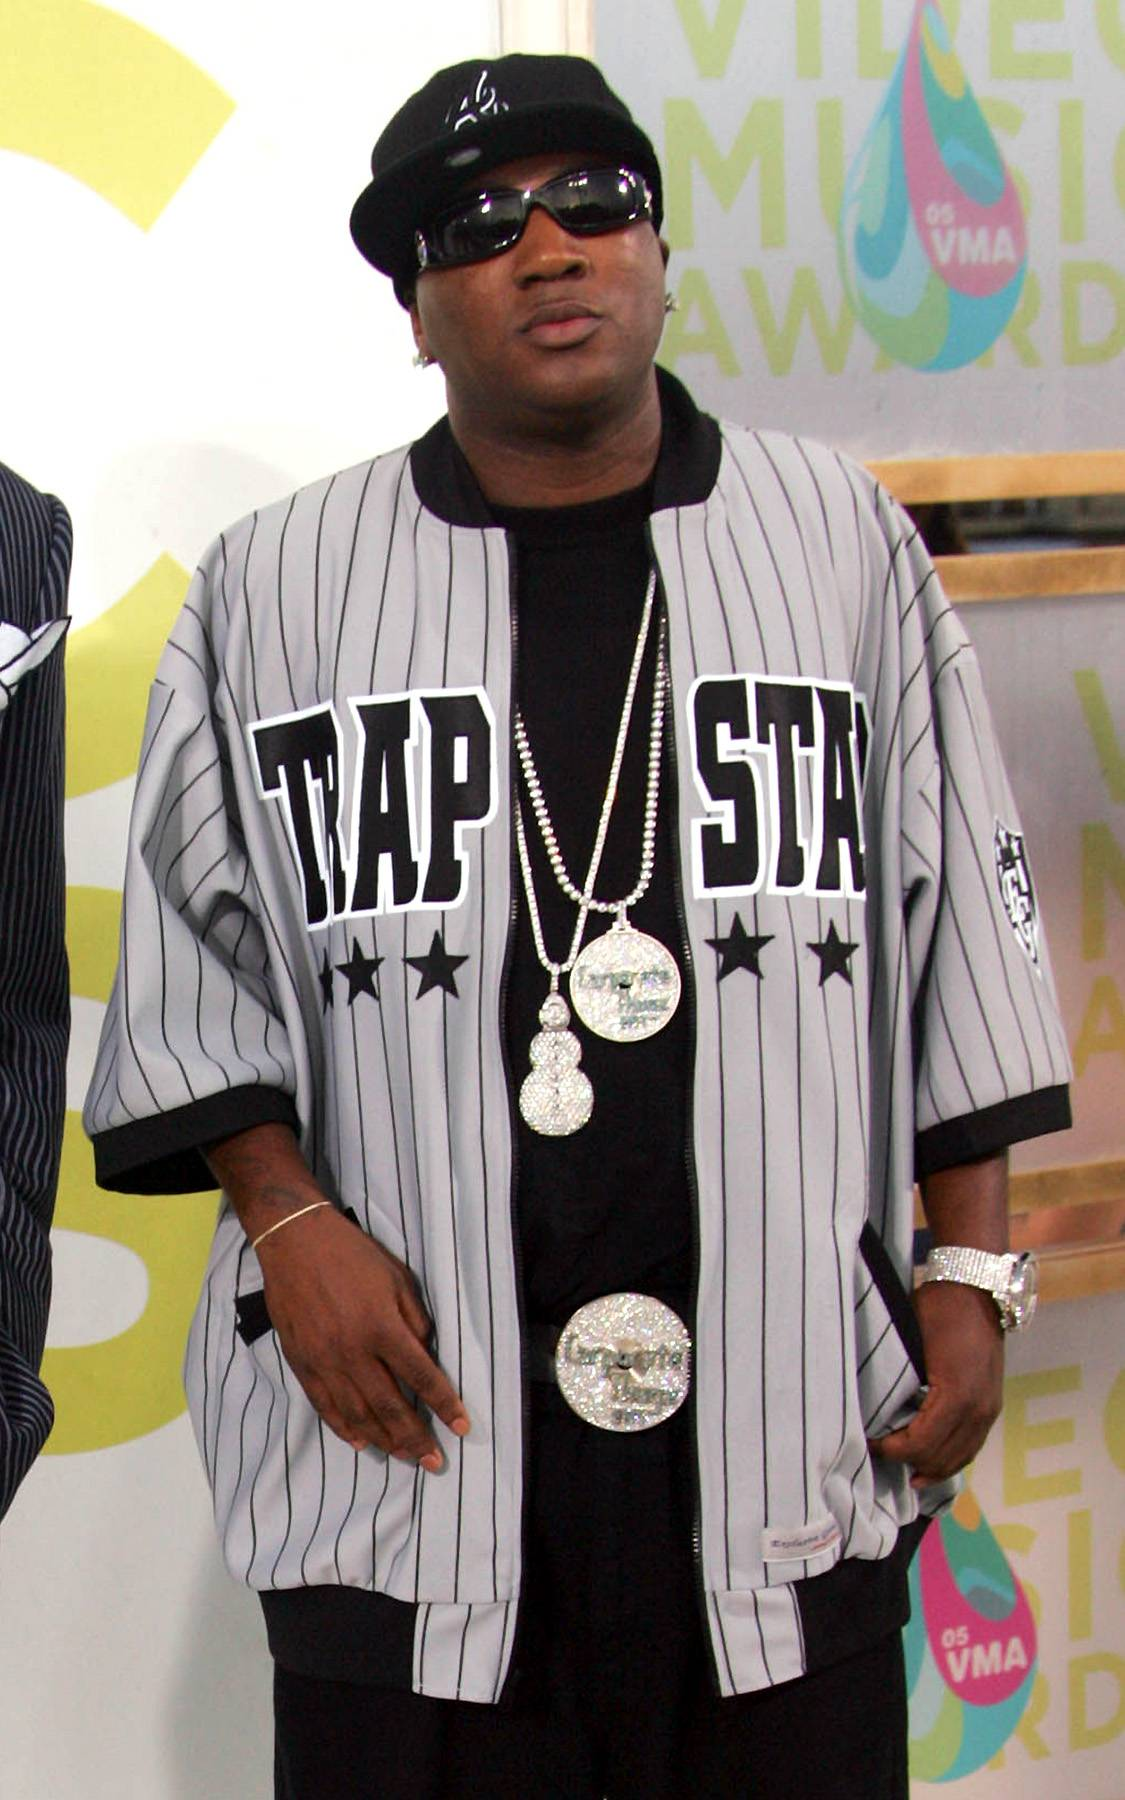 A Corporate Thug - By 2003, Jizzle was gaining fame on the ATL underground hip hop scene. He formed his Corporate Thugz Entertainment company and released his indie debut,Come Shop Wit? Me, a tone-setting double disc featuring appearances from Bone Crusher and Pastor Troy. The hood chronicle sold more than 50,000 copies.(Photo: Evan Agostini/Getty Images)